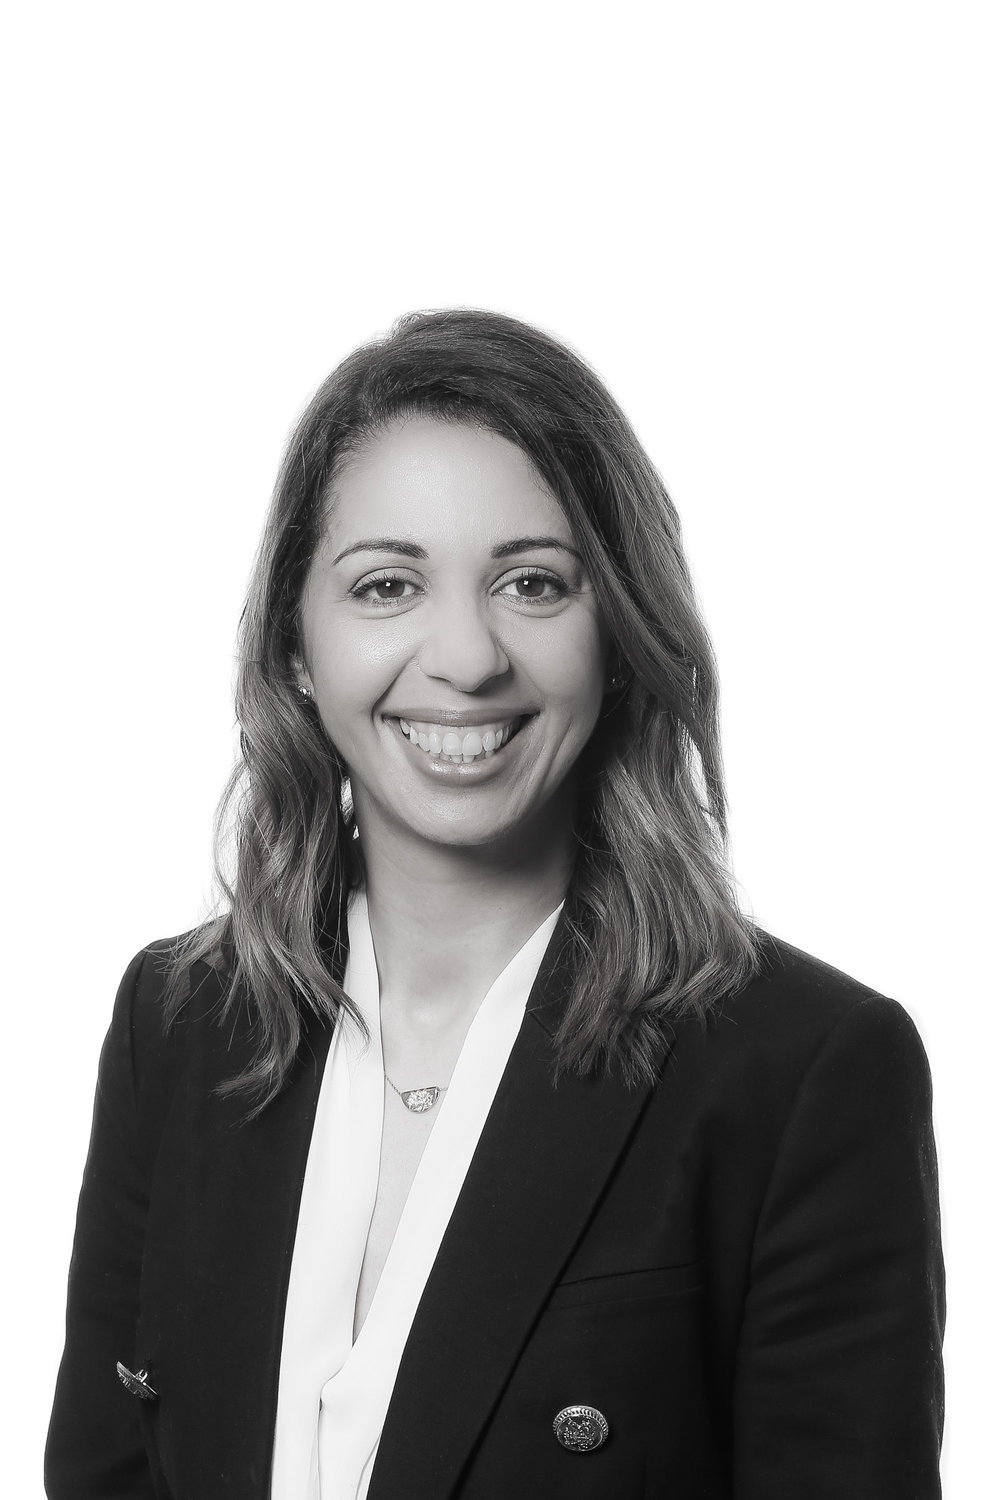 Diana Giugno - Senior ParalegalDiana has worked alongside Shane as a senior paralegal since 2001. She assists the Supreme Court Practice and has been part of the legal team on some of Ryan Legal's most successful cases. She works predominately in the area of interstate claims with Shane.